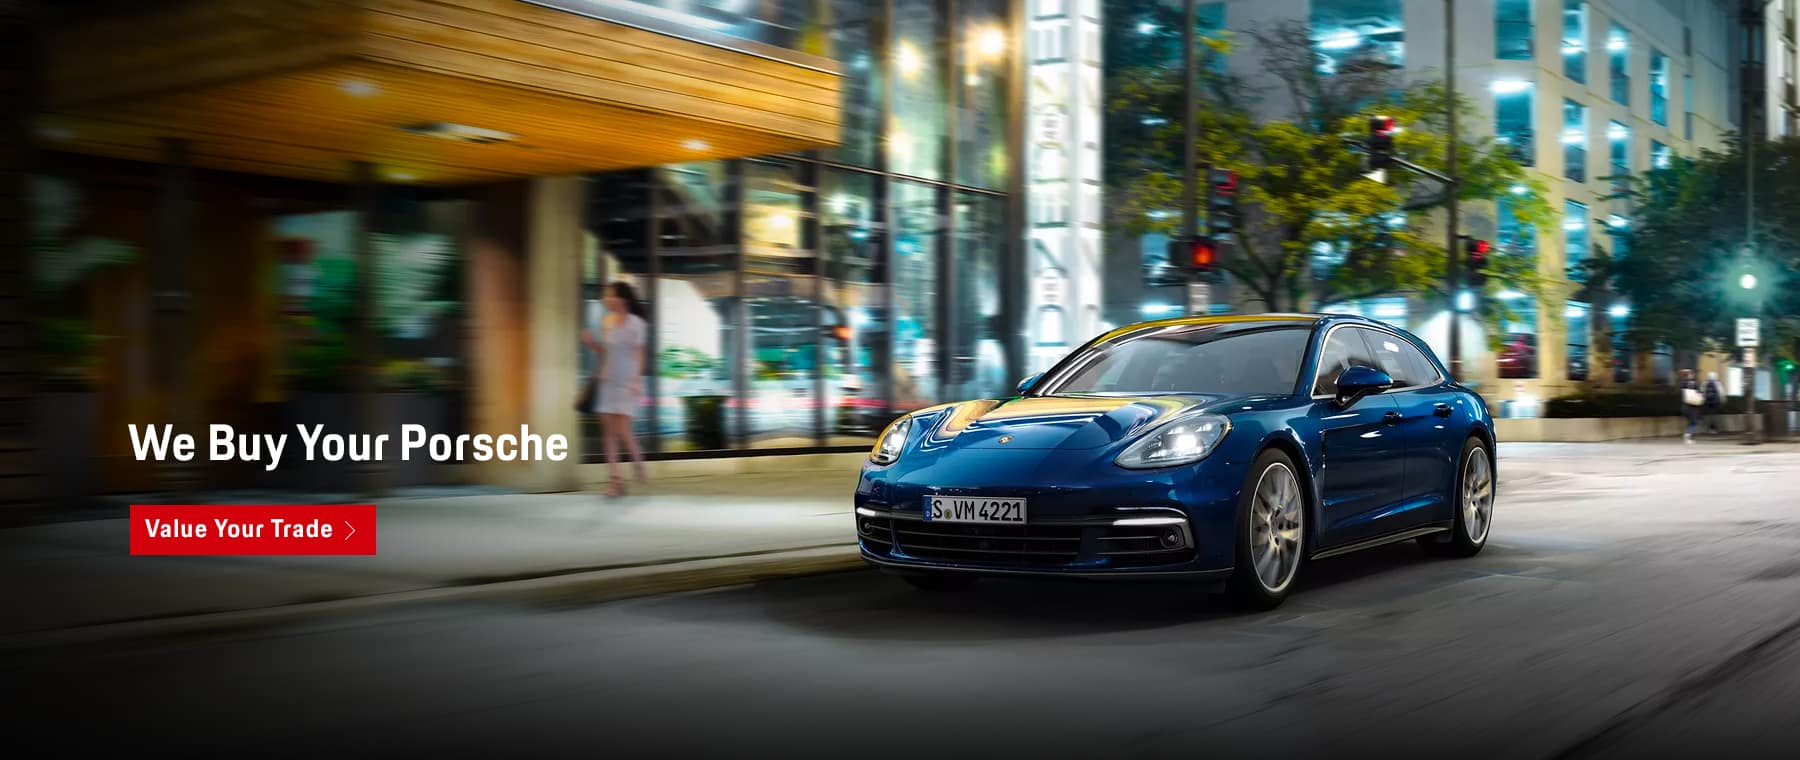 sell_your_porsche_to_us_we_buy_your_porsche_at_hendrick